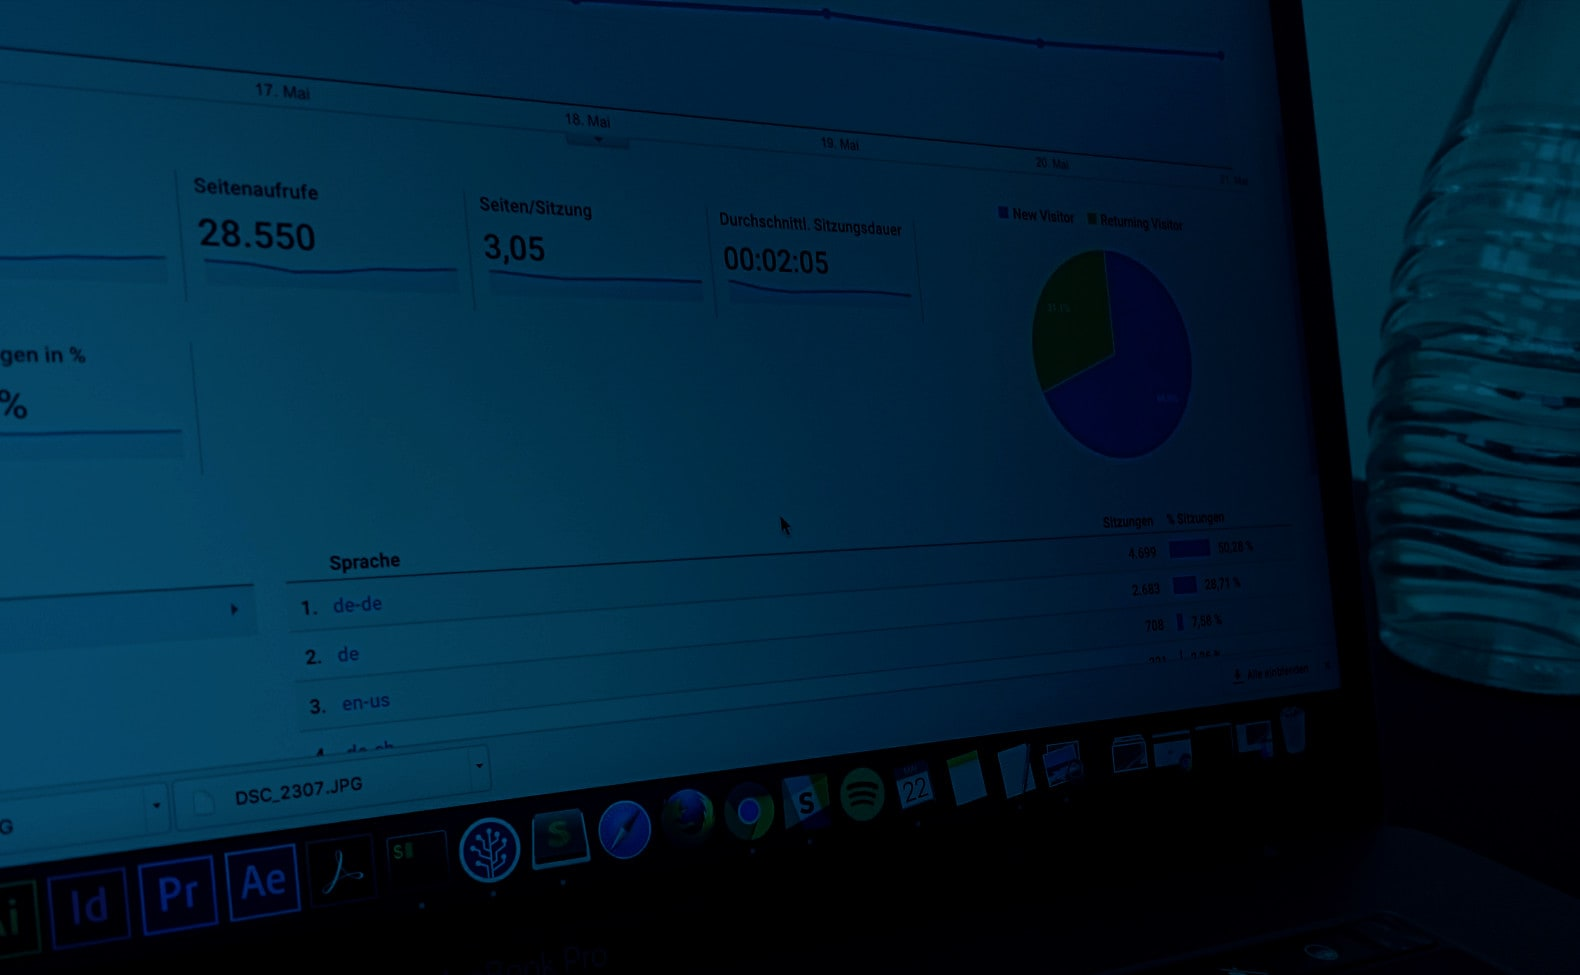 Website-Statistiken aus Google Analytics